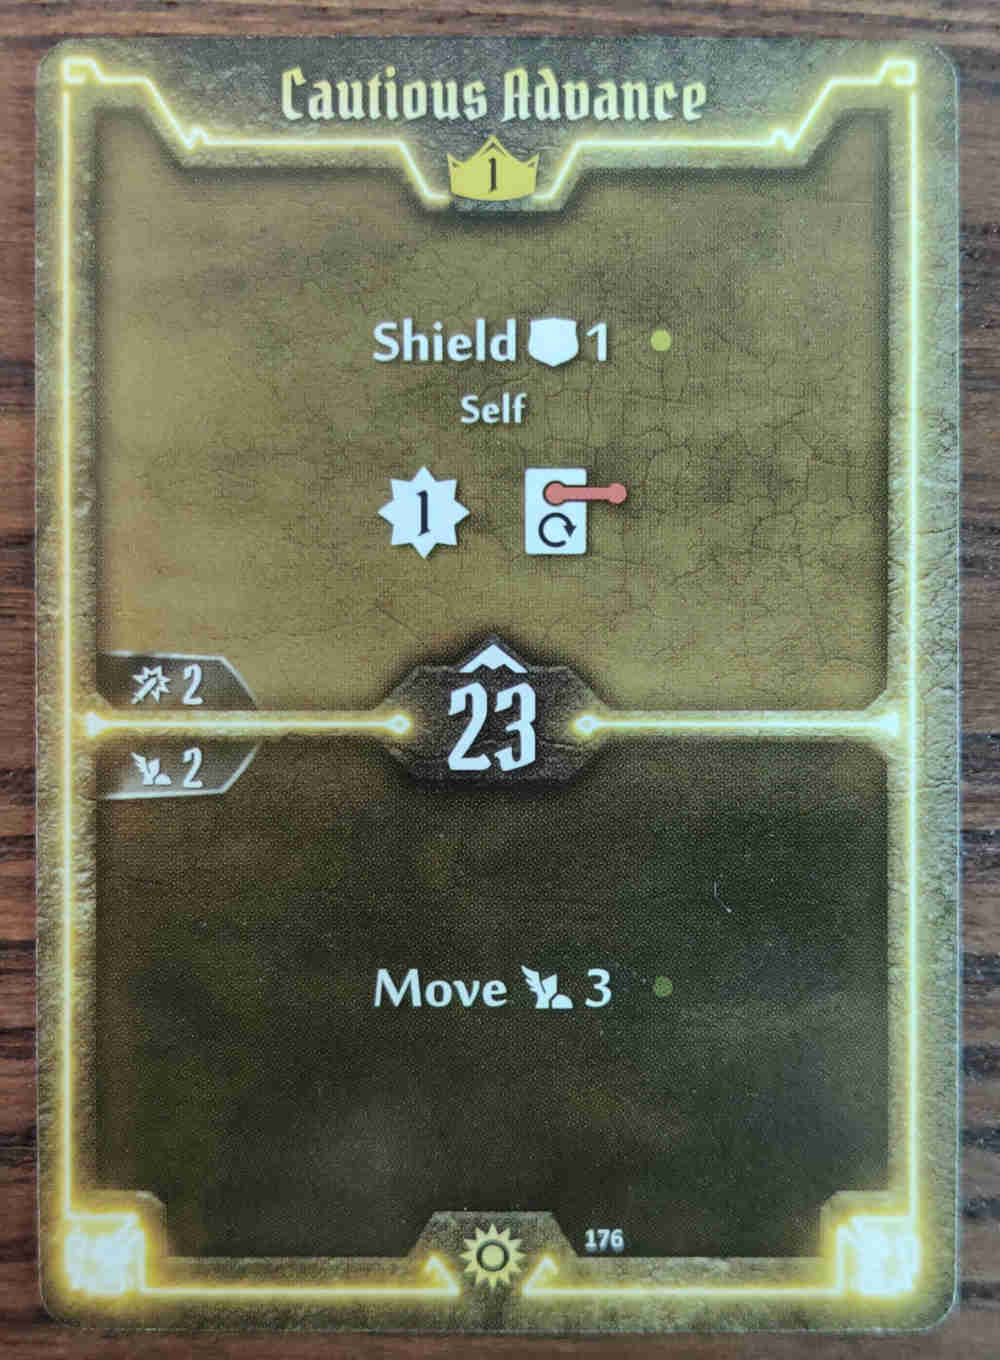 Gloomhaven Level 1 Sunkeeper Cautious Advance card